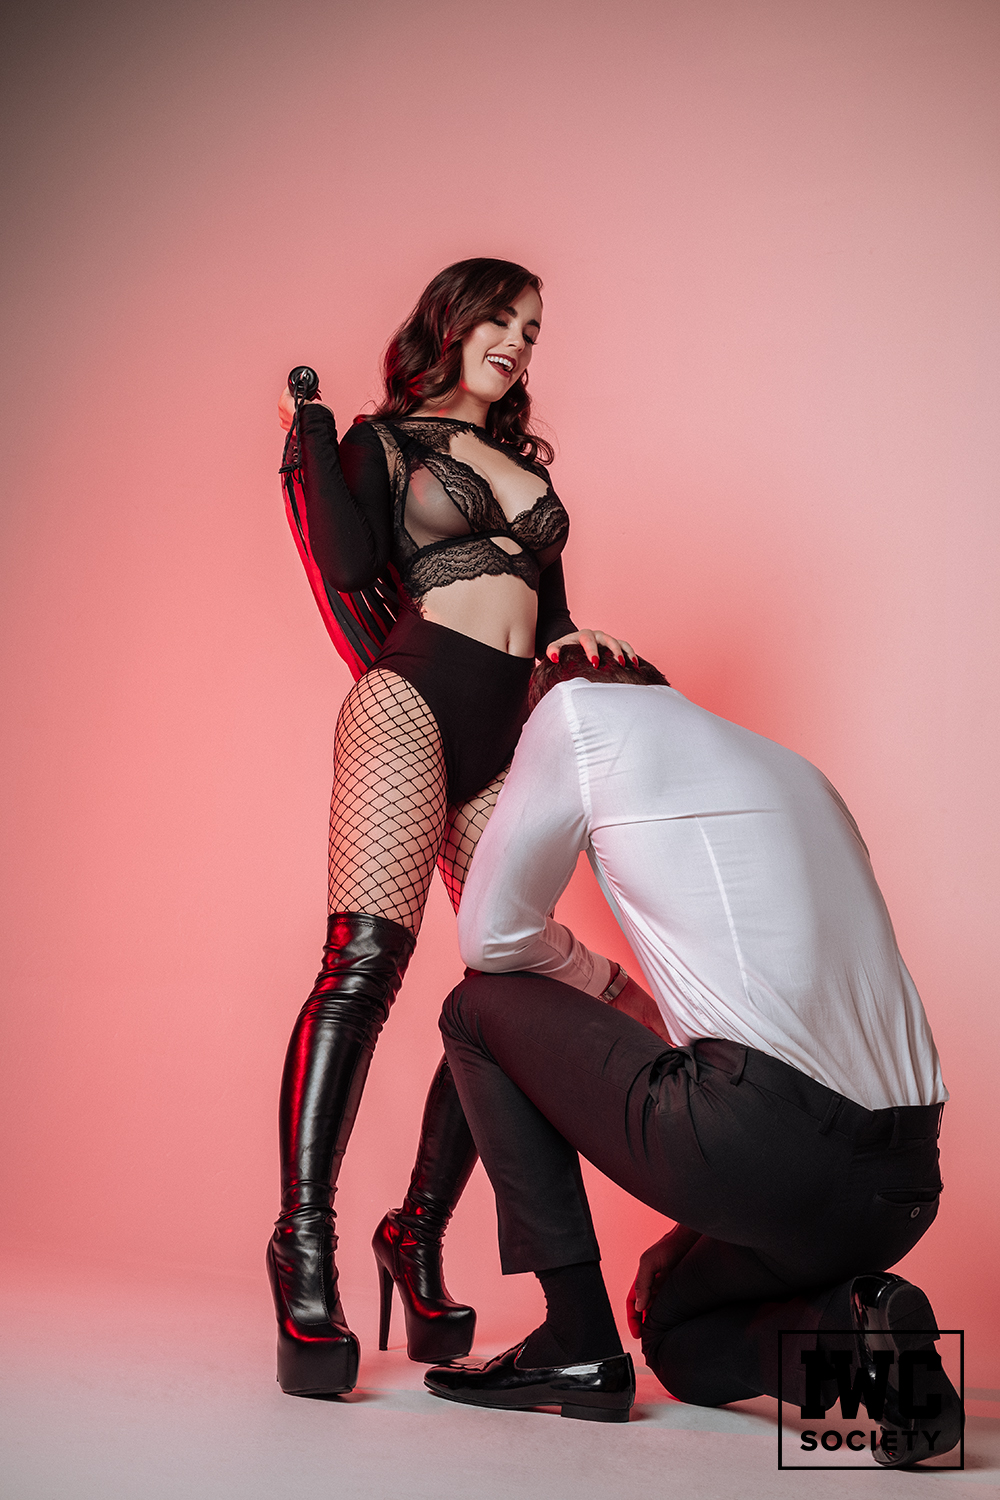 Princess in revealing black mesh bralette and high heel boots forcing man on his knees with whip in hand